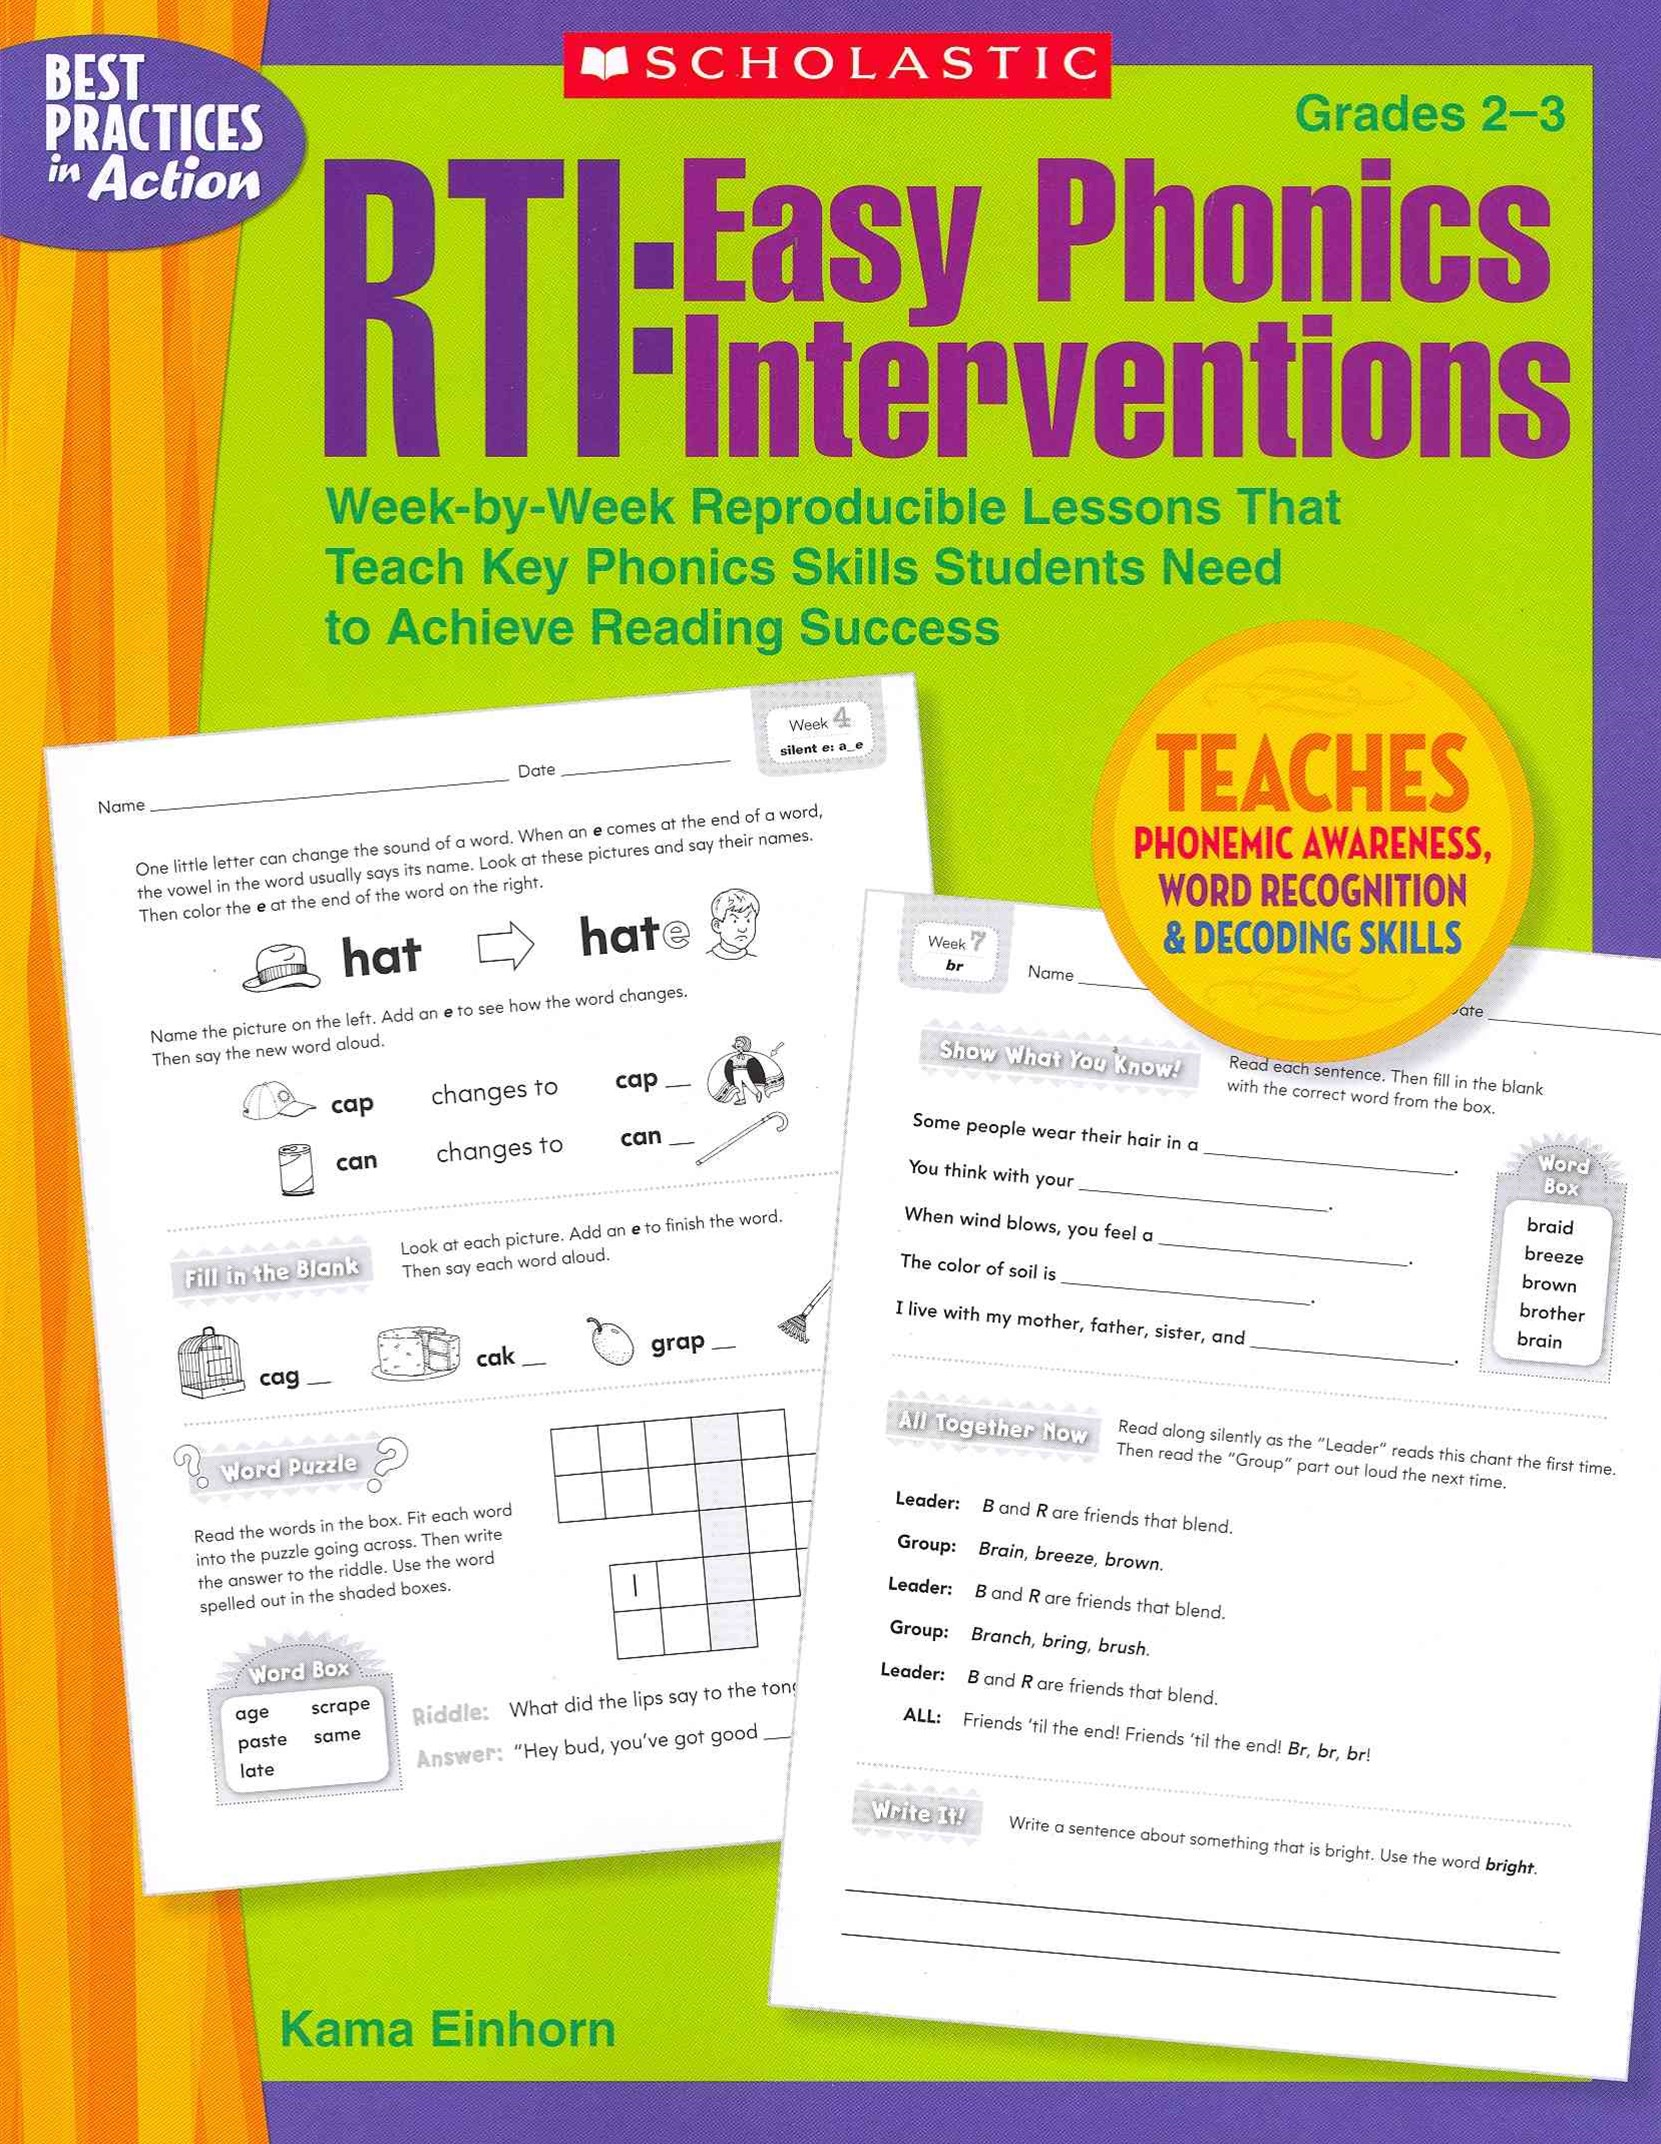 RTI - Easy Phonics Interventions